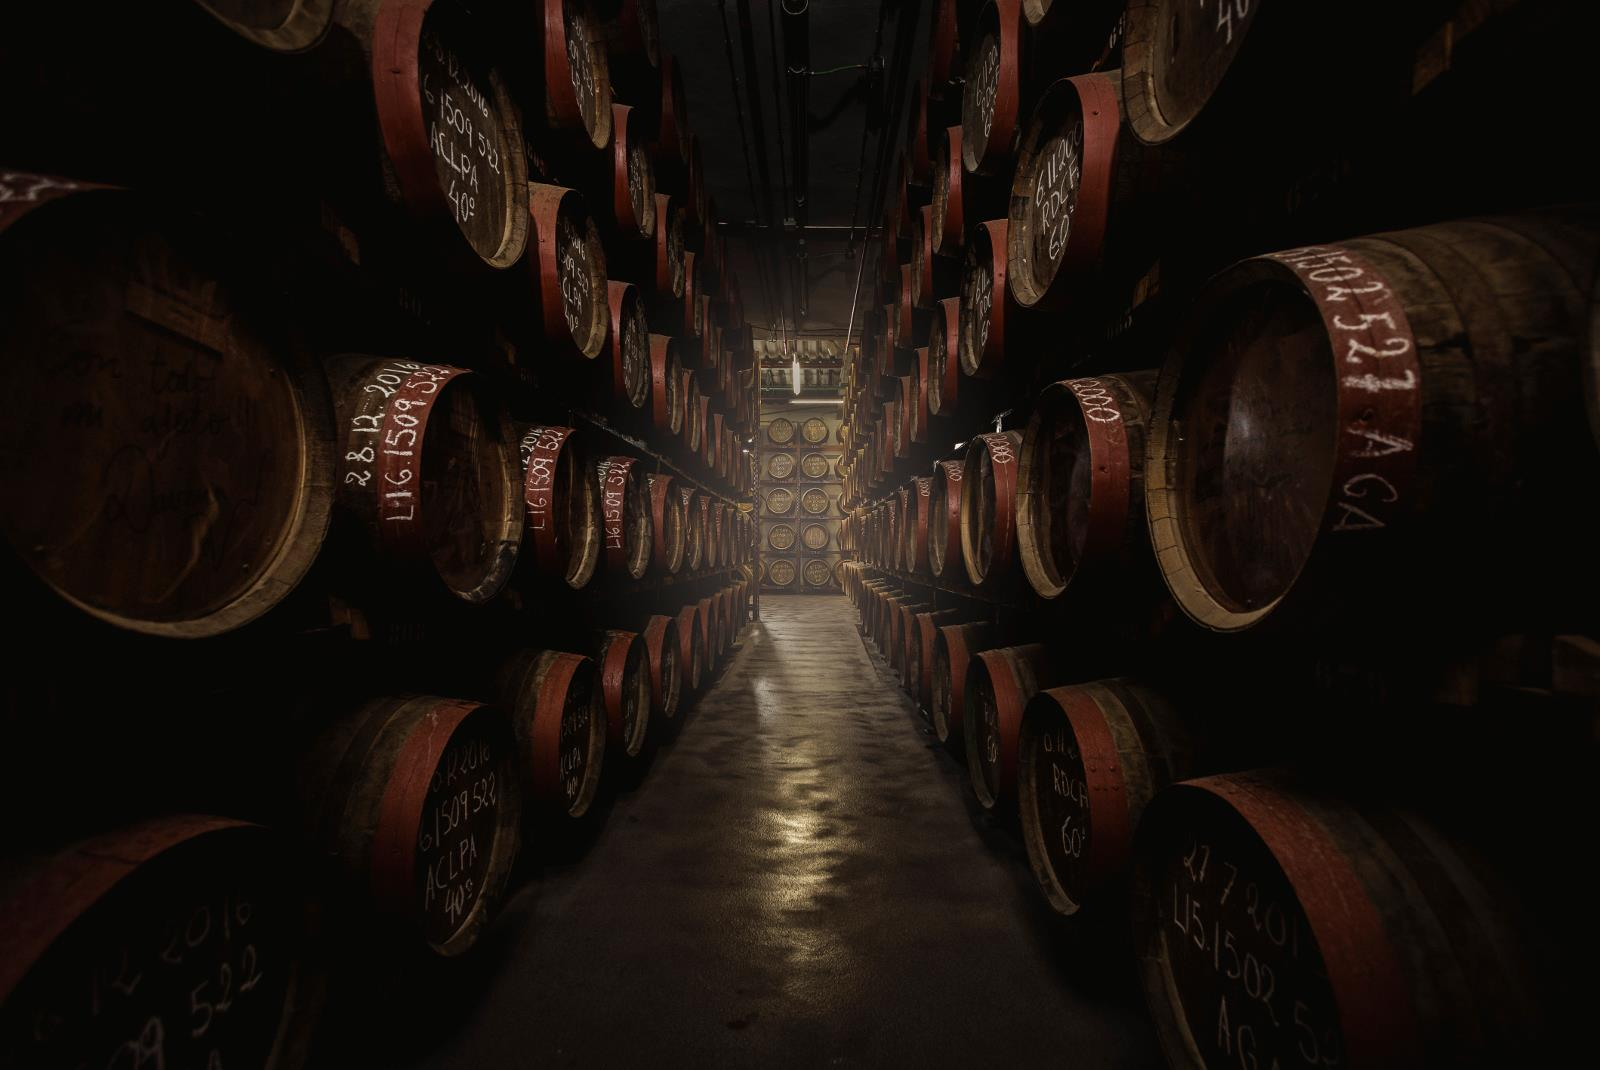 Guided-Tour-at-Ron-Arehucas-Distillery-8